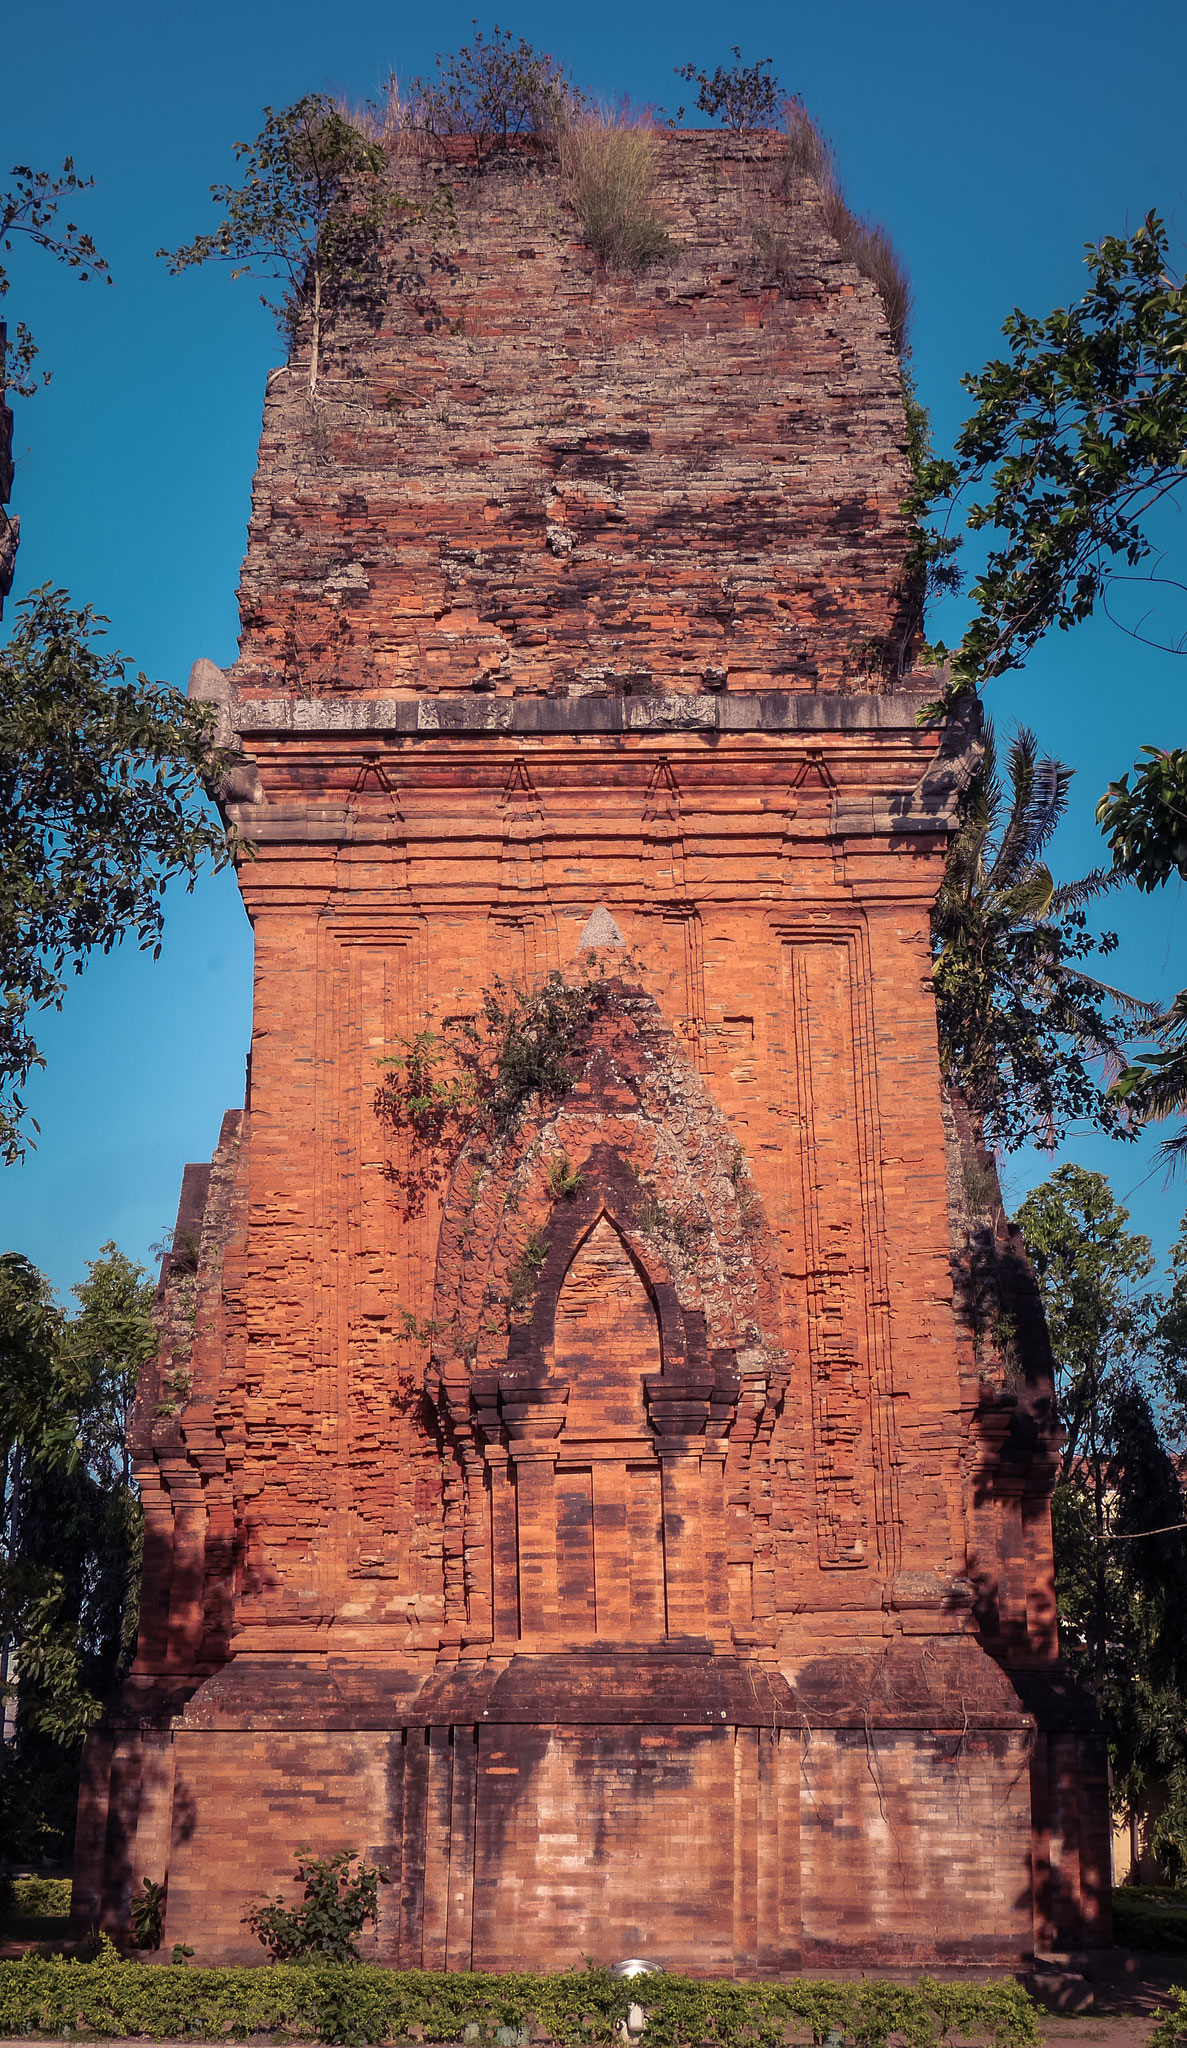 Qui Nhon - Thap Doi (Twin Towers)